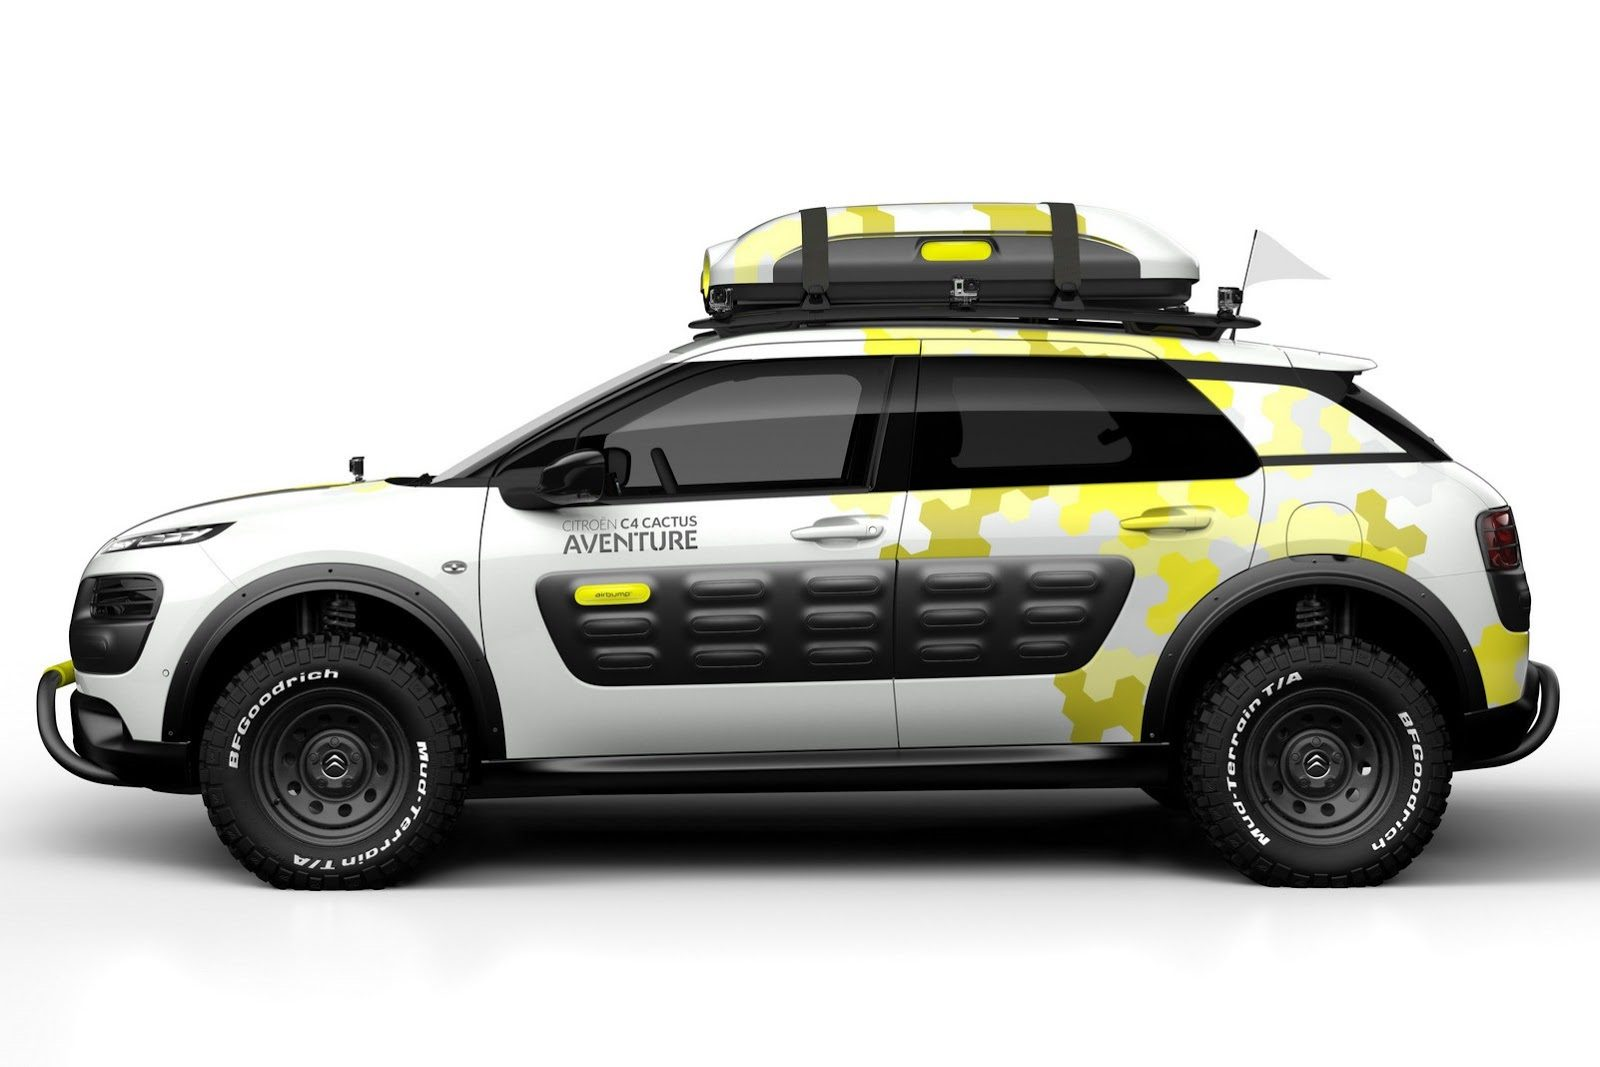 foto citroen c4 cactus aventure concept citroen c4 cactus aventure 004. Black Bedroom Furniture Sets. Home Design Ideas